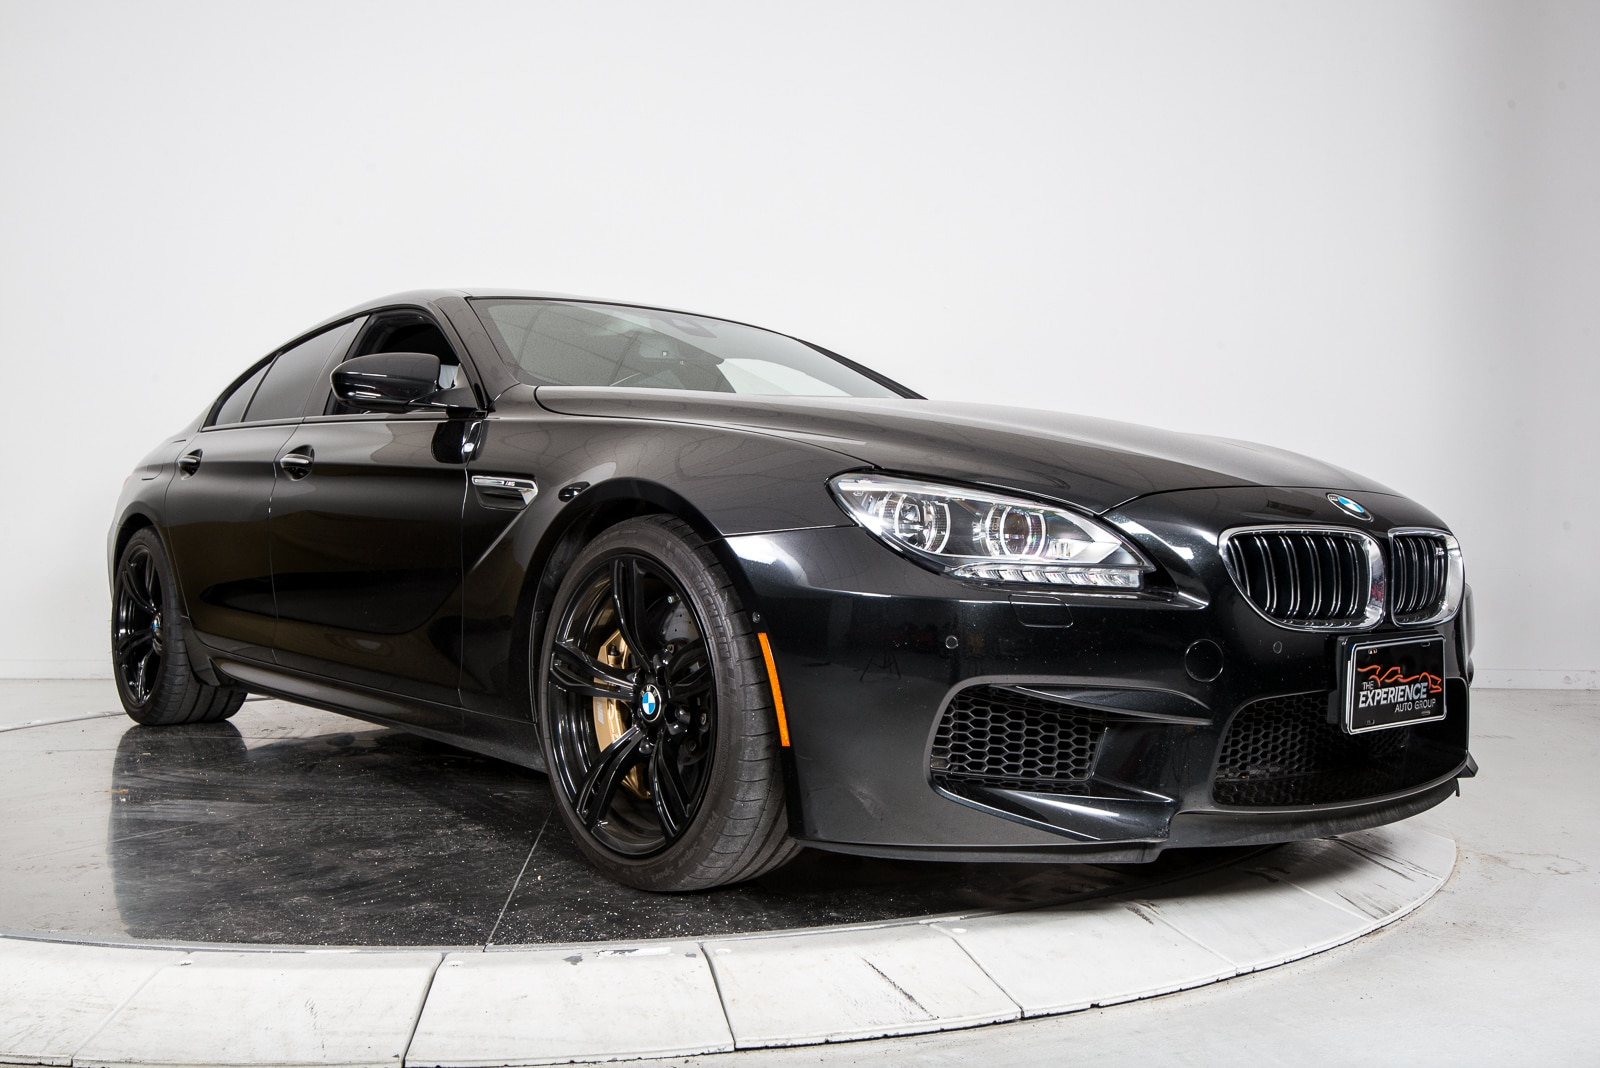 2014 Bmw M6 Rebuilt Salvage For Sale: Used 2014 BMW M6 GRAN COUPE For Sale